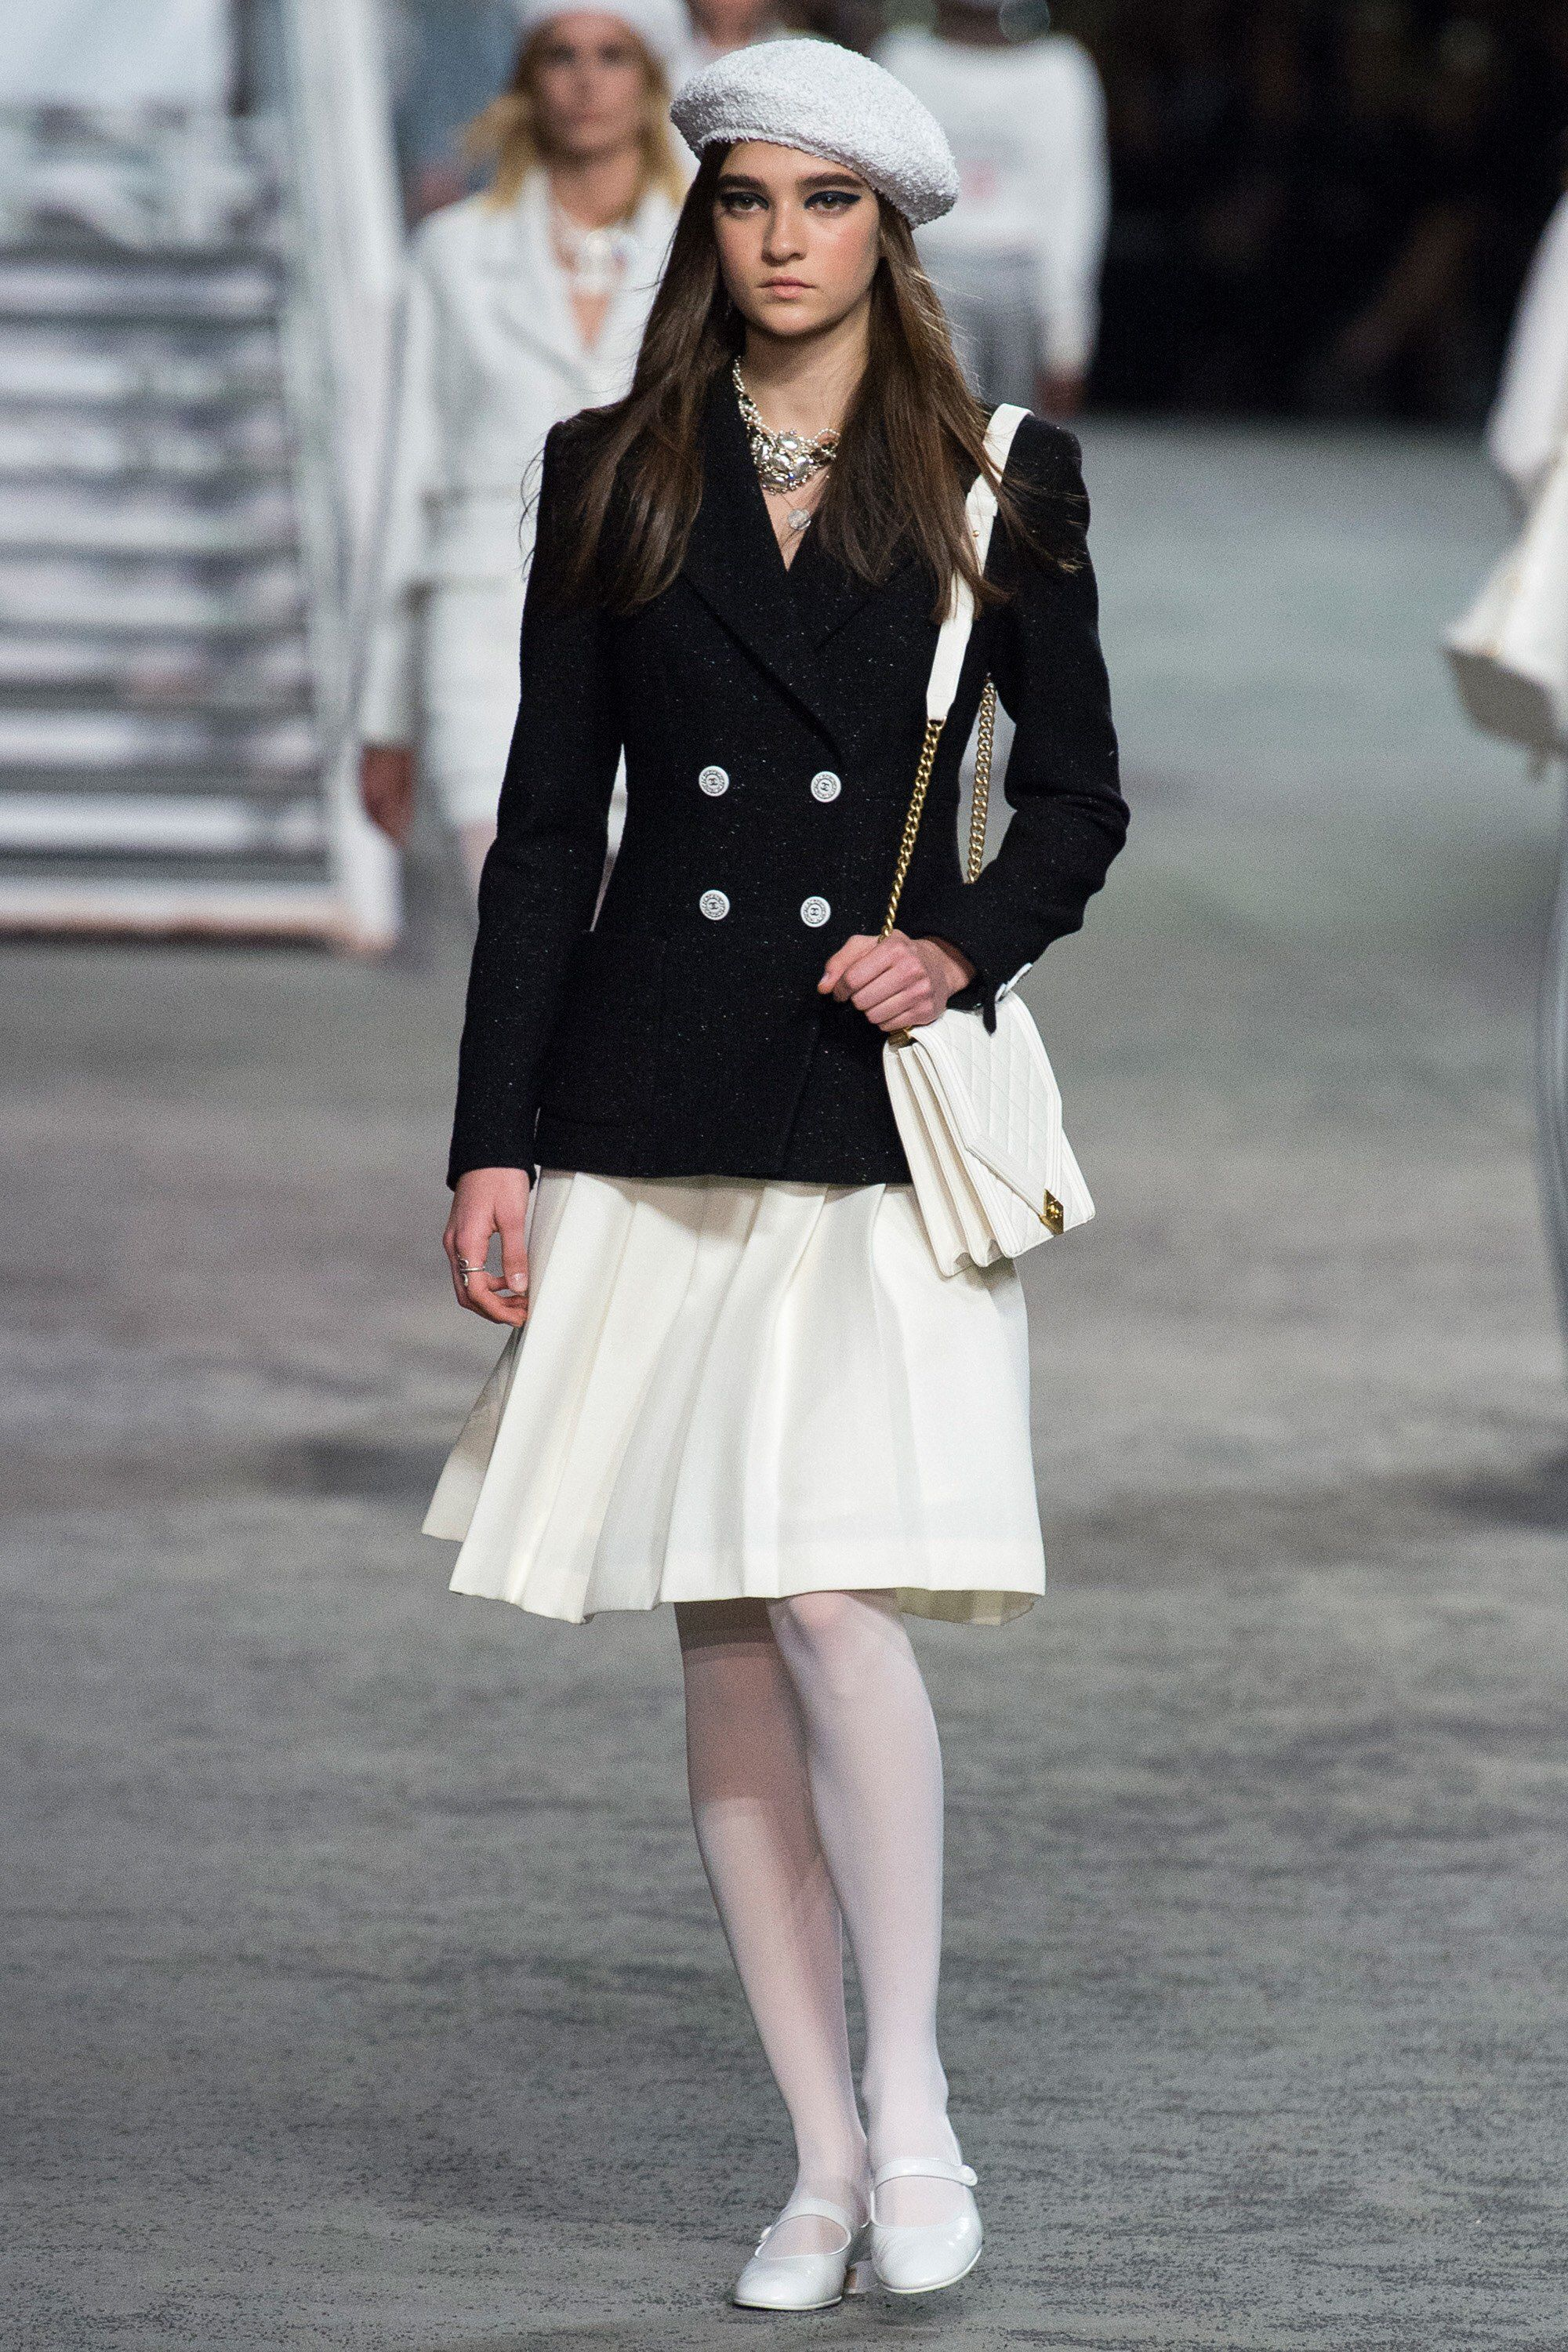 c3a70bf1501 Chanel Resort 2019 Fashion Show Collection  See the complete Chanel Resort  2019 collection. Look 5